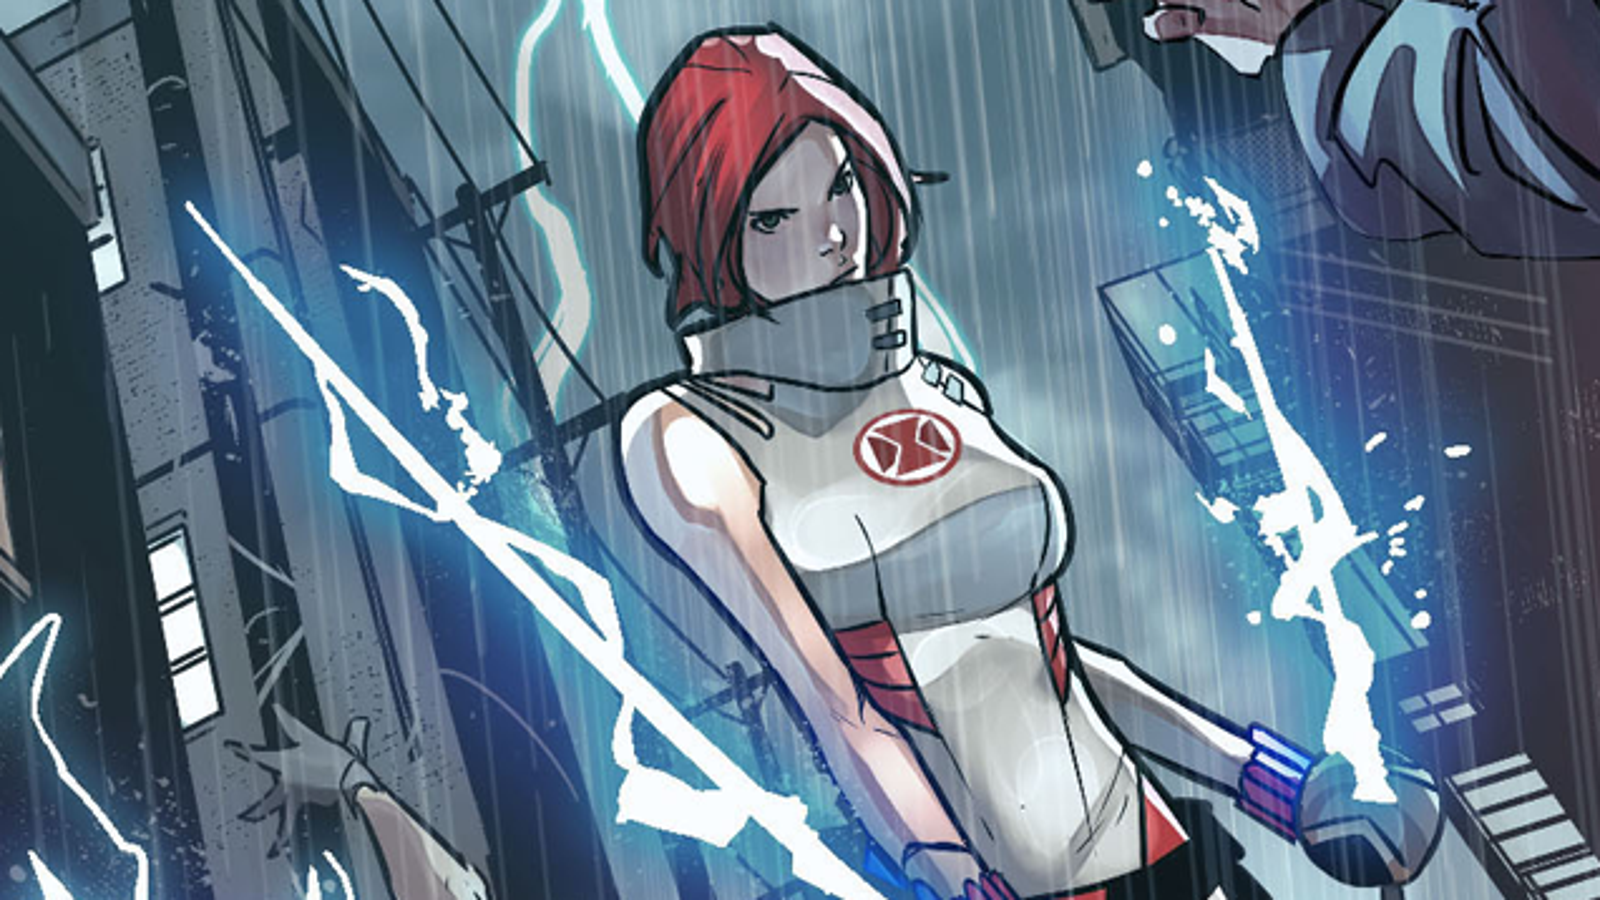 Say Hello To The Red Widow Marvels Mysterious New Super Spy